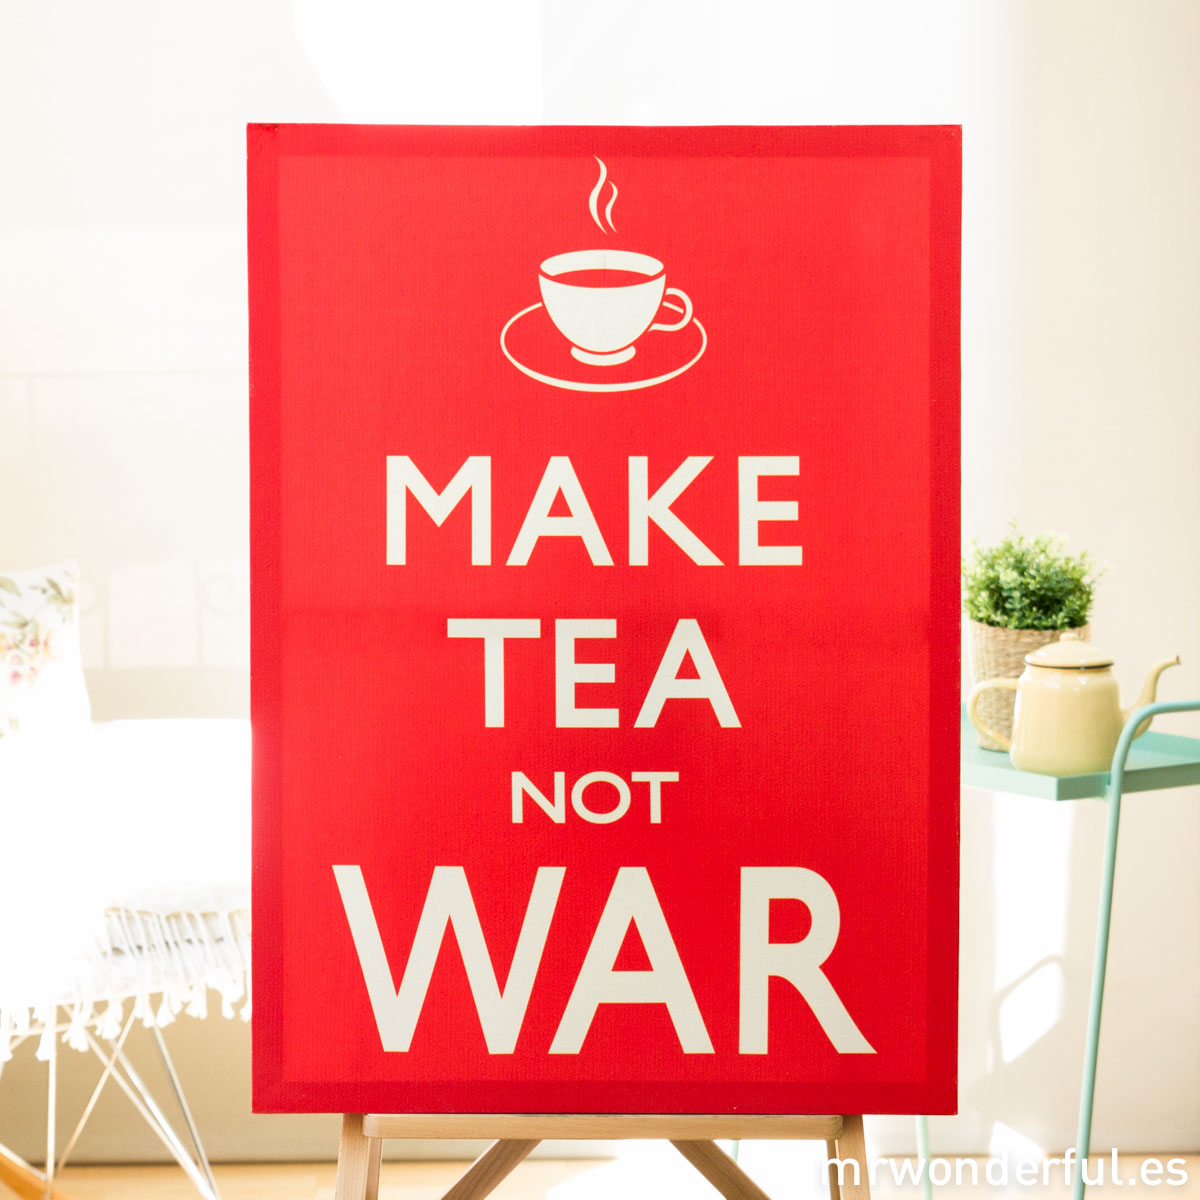 mrwonderful_WP0898A_1_cuadro_make-tea-not-war-3